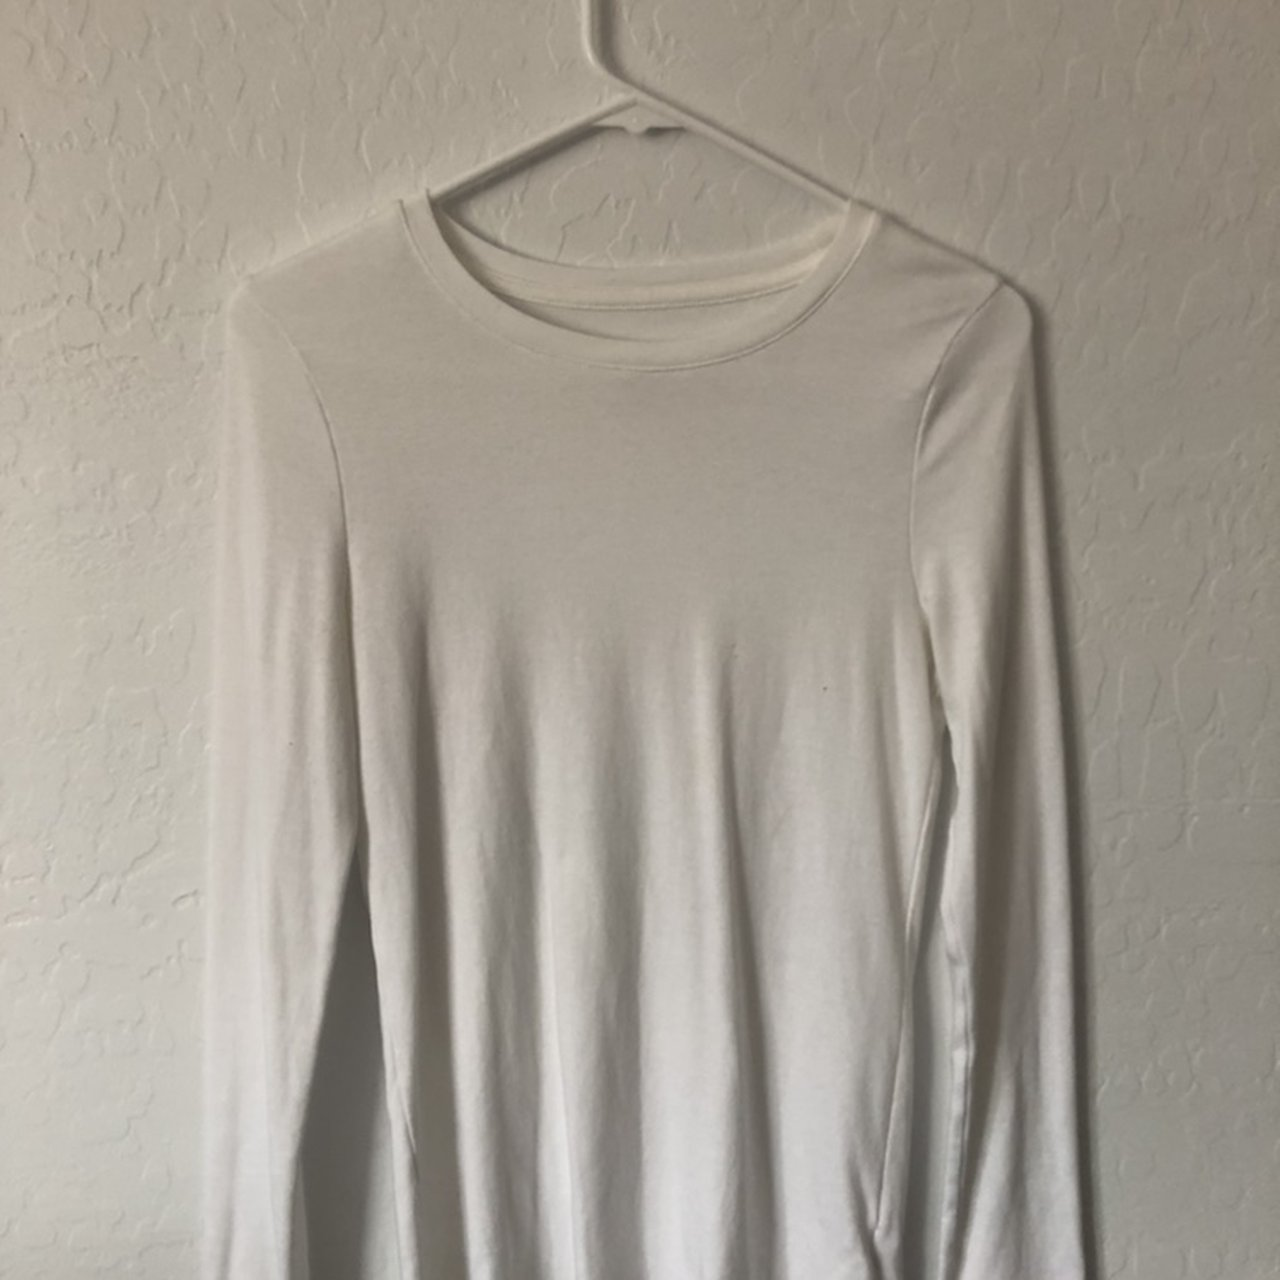 Plain white long sleeve shirt. The softest thing I have ever - Depop c65f4727232